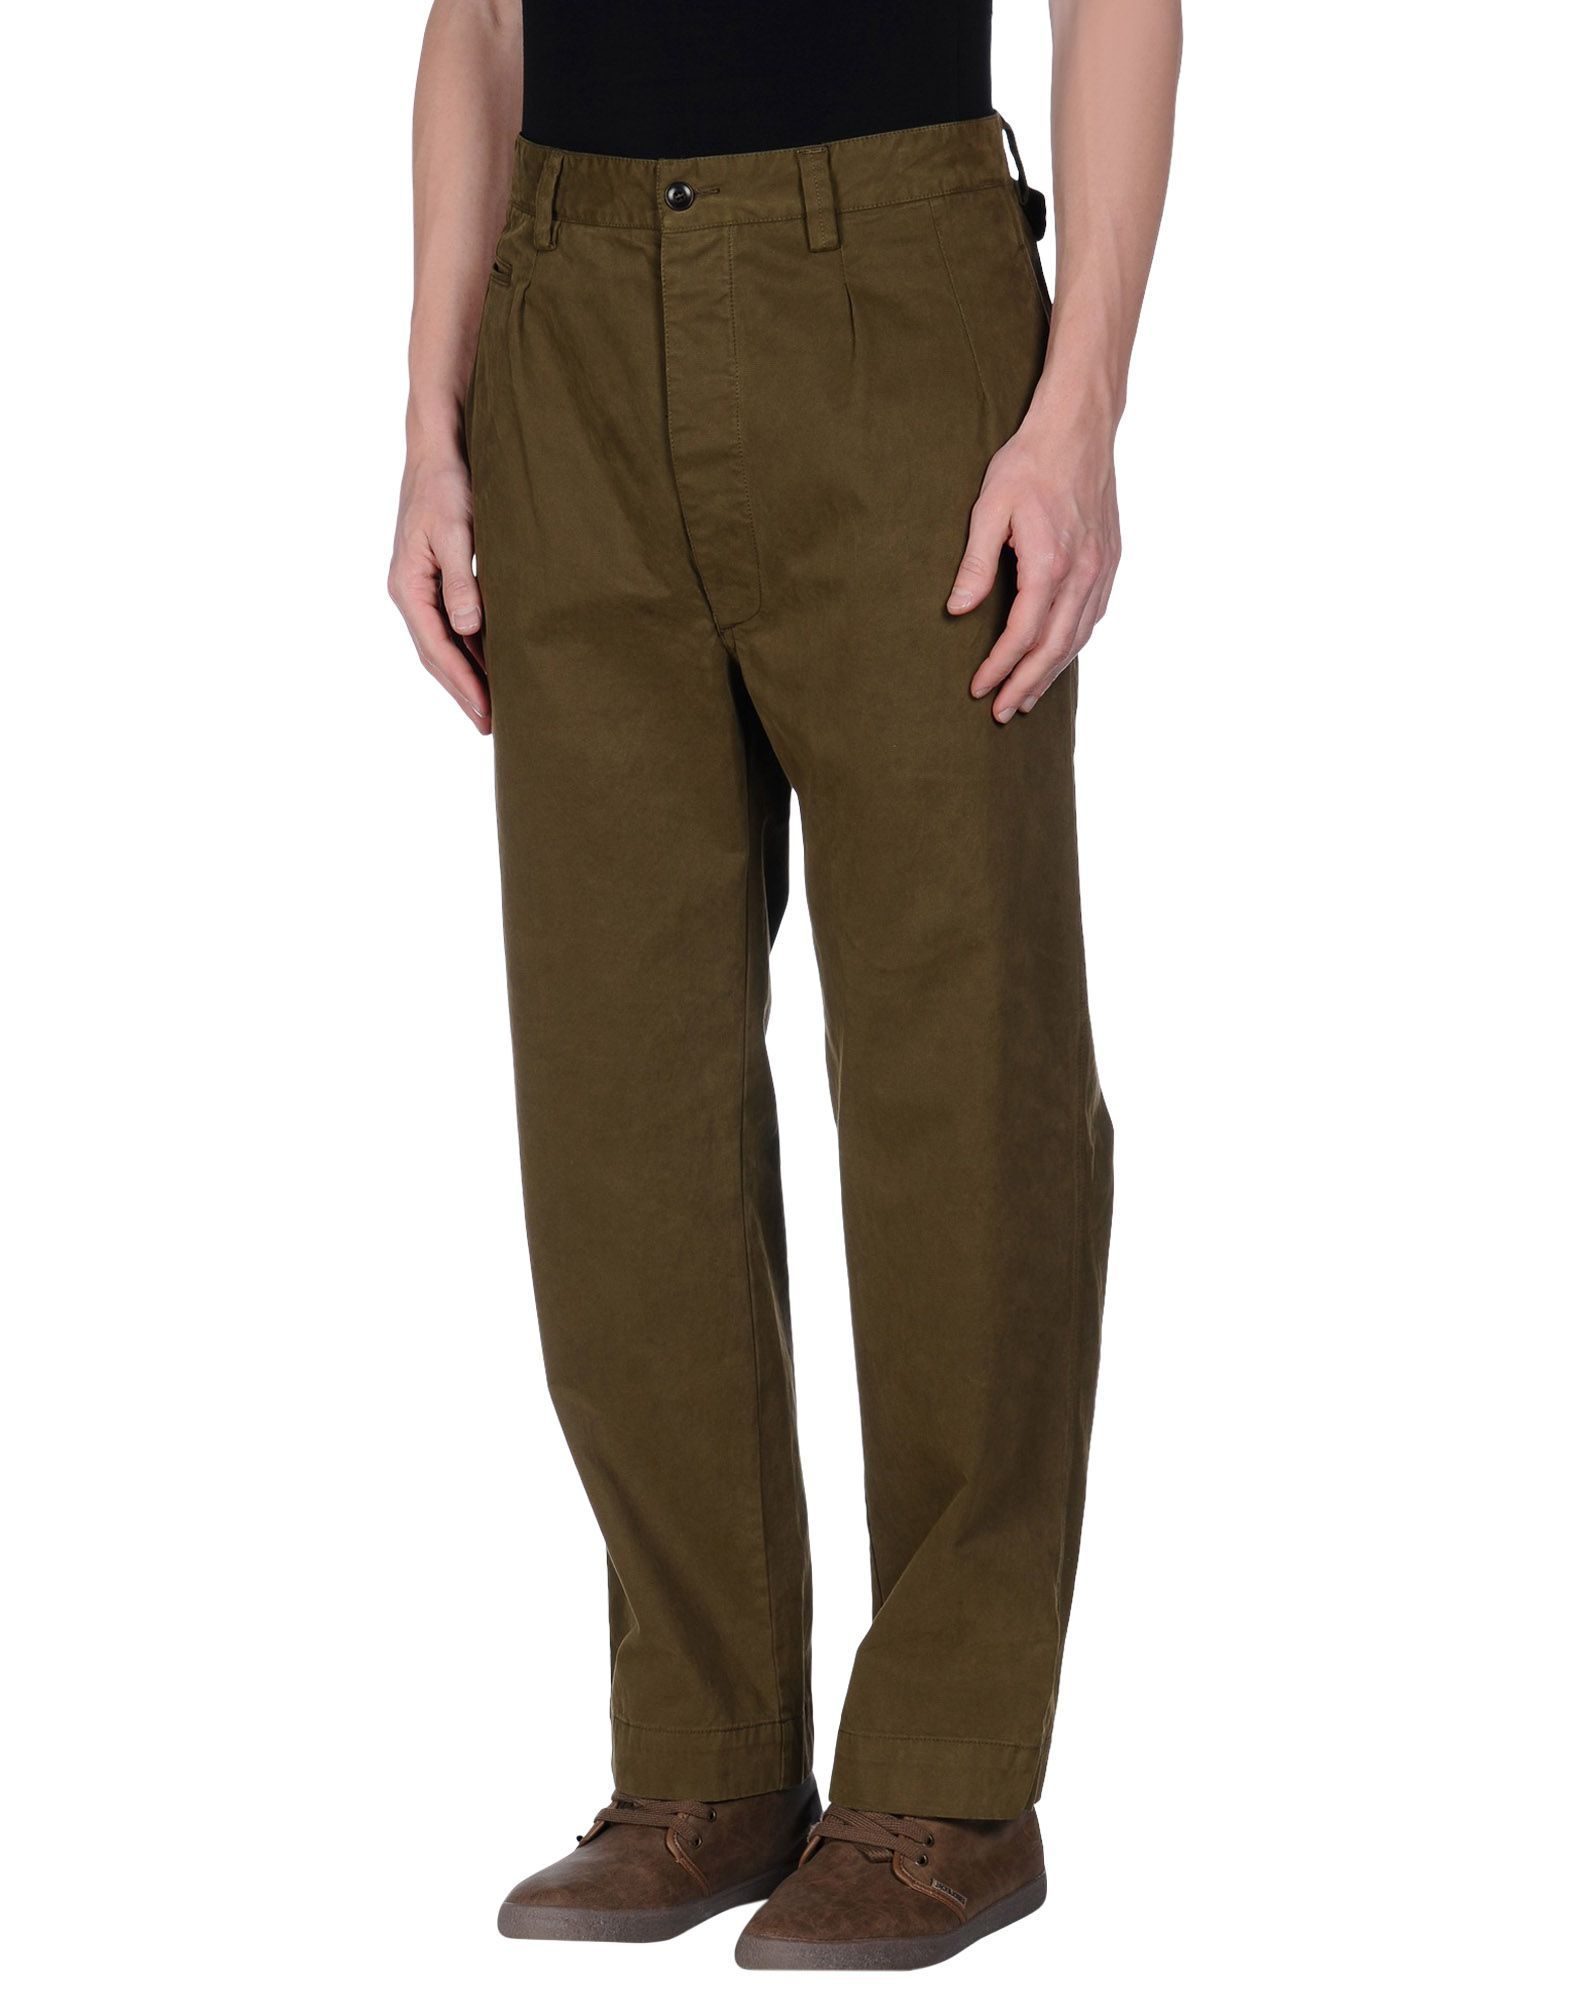 Clearance Hot Sale Conrad trousers - Green East Harbour Surplus Sast For Sale Free Shipping HZ9oK